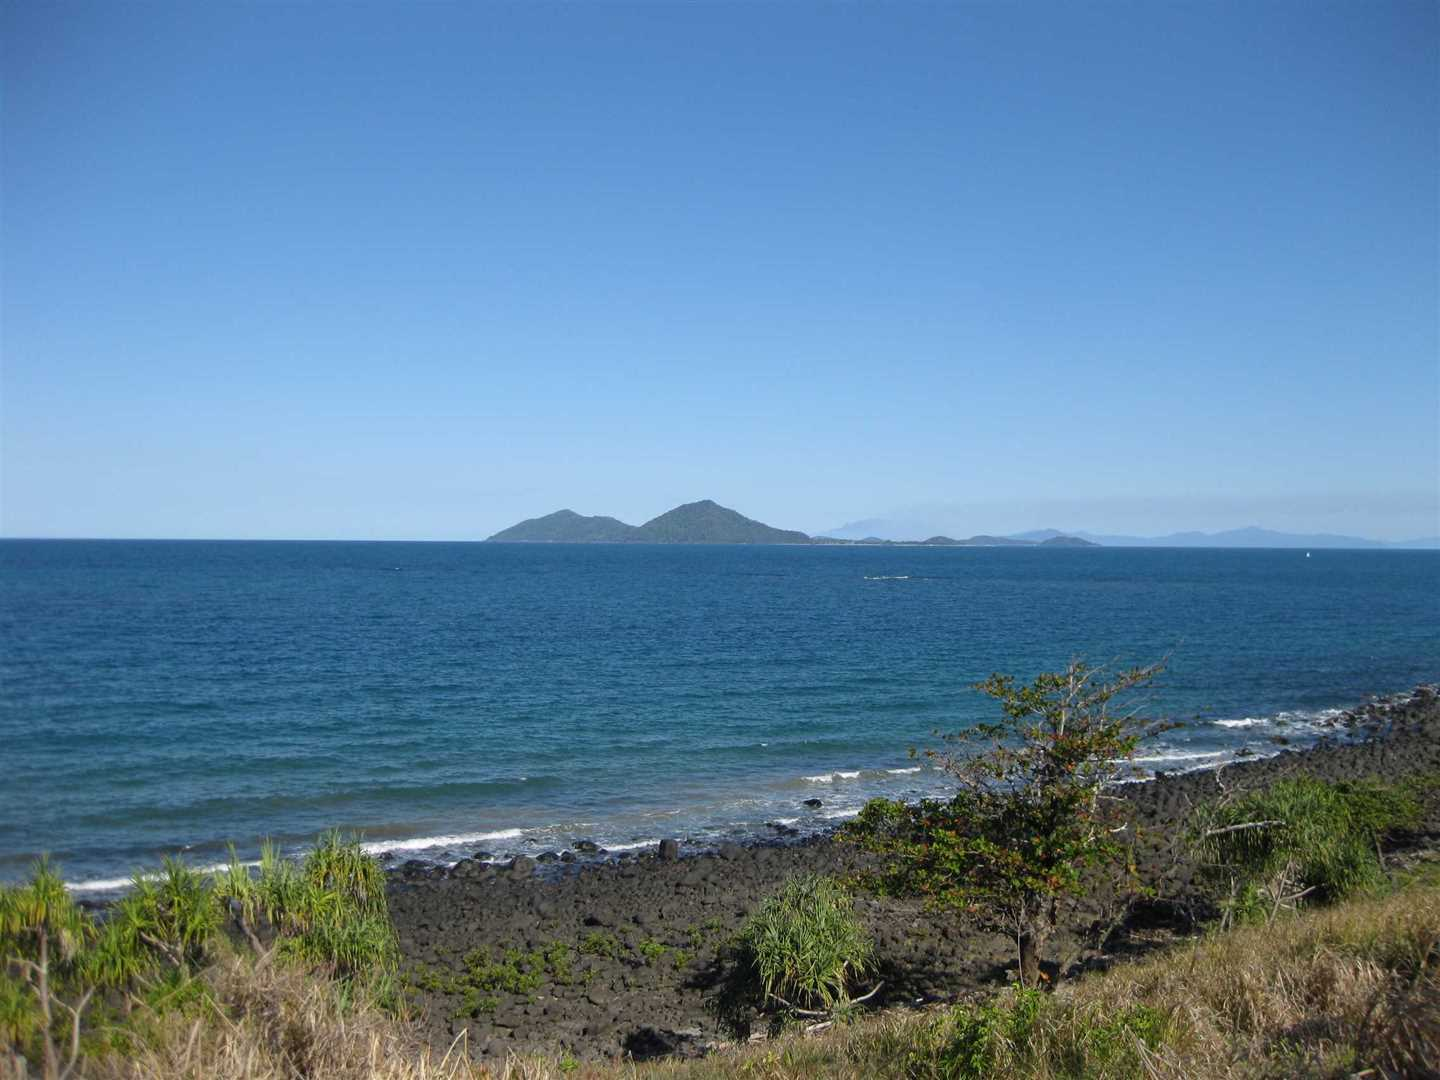 View of part of Dunk Island, Bedarra Island and adjacent Islands taken from Clump Point lookout